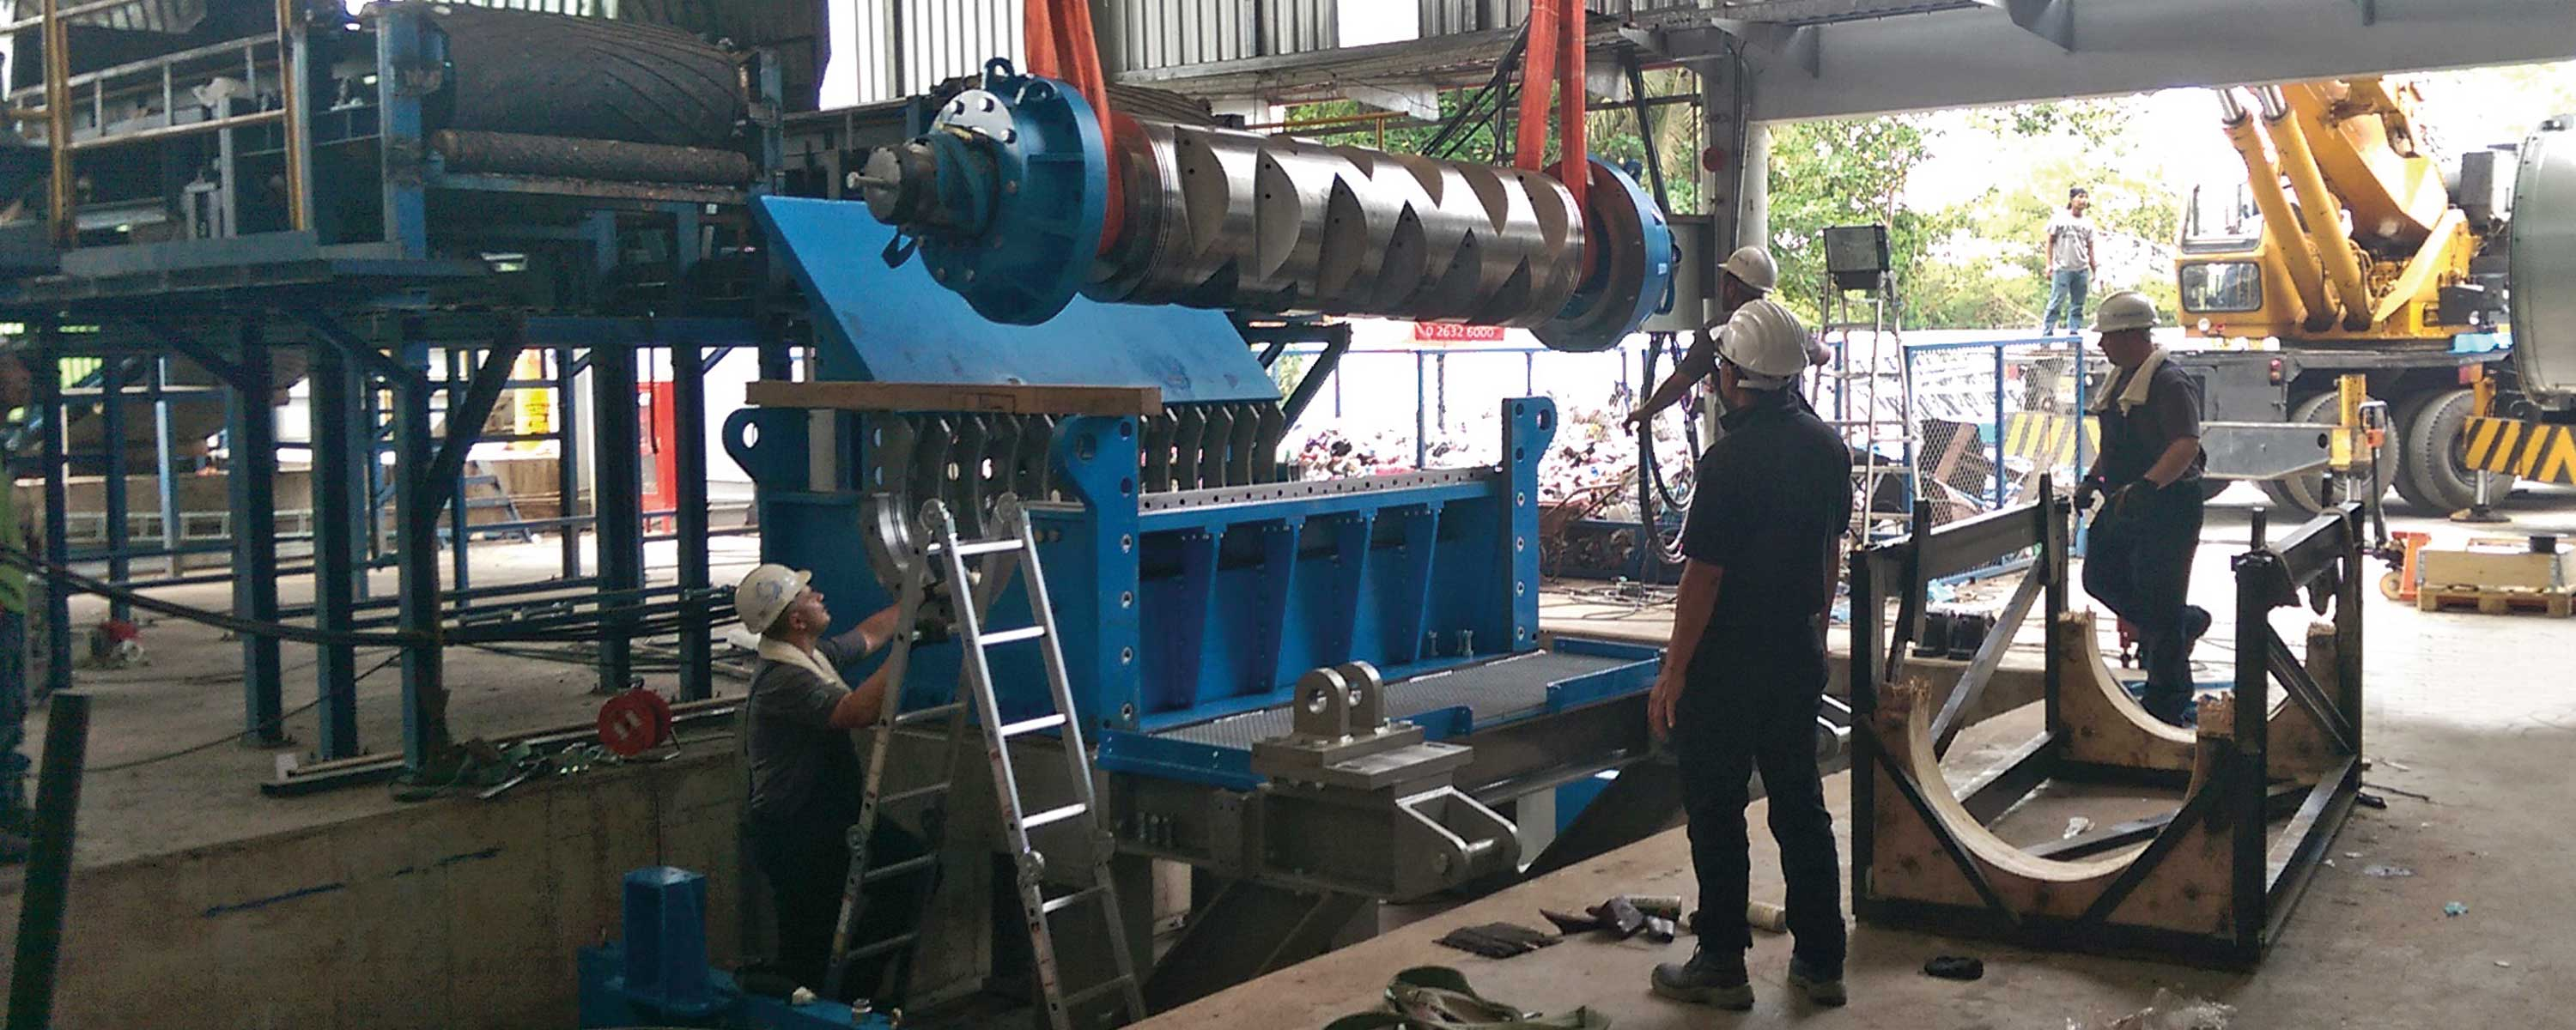 Shaft being lowered into a recycling machine